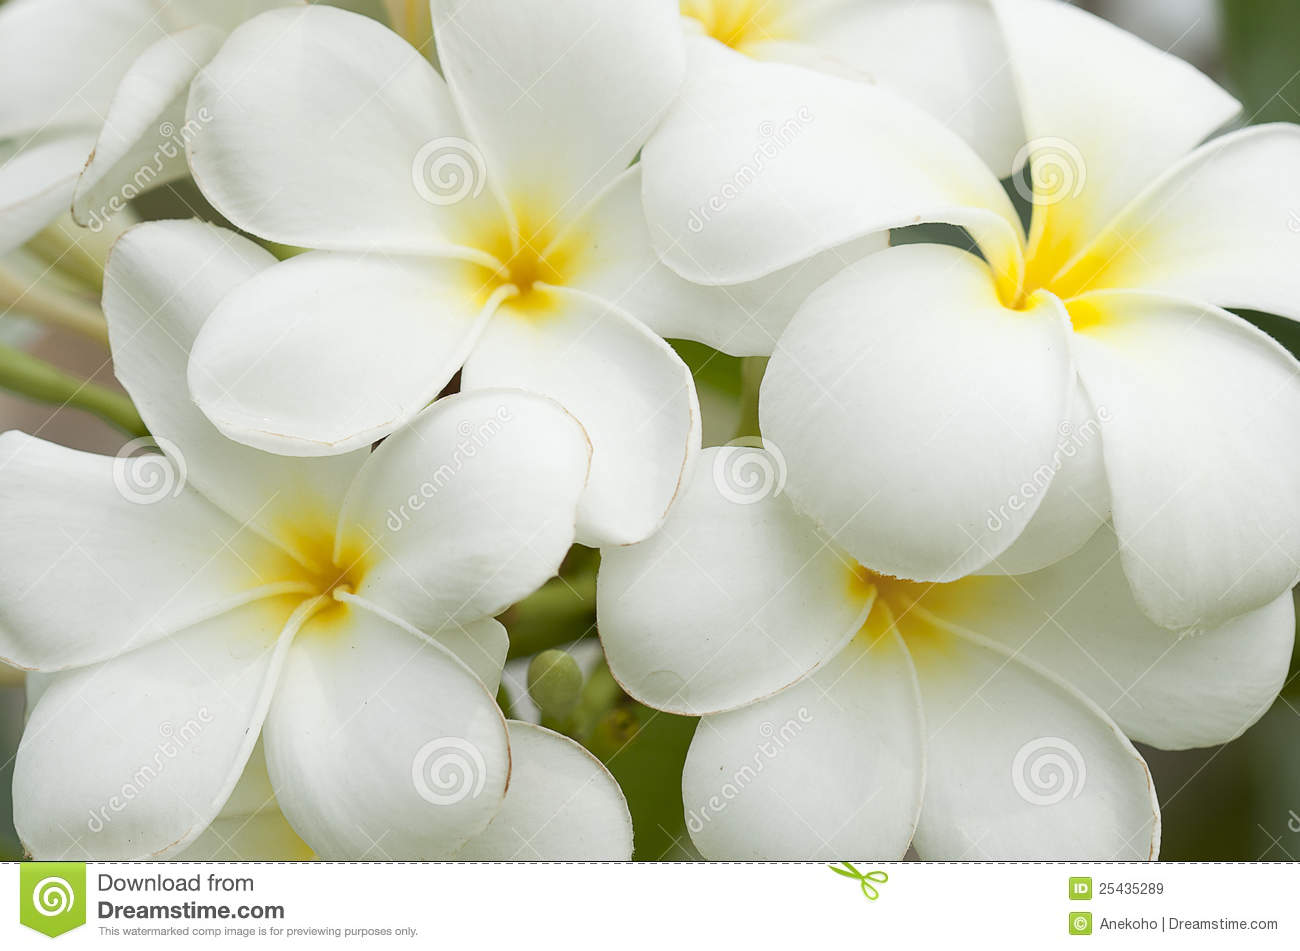 Car Wallpaper Clipart White And Yellow Frangipani Flowers Royalty Free Stock